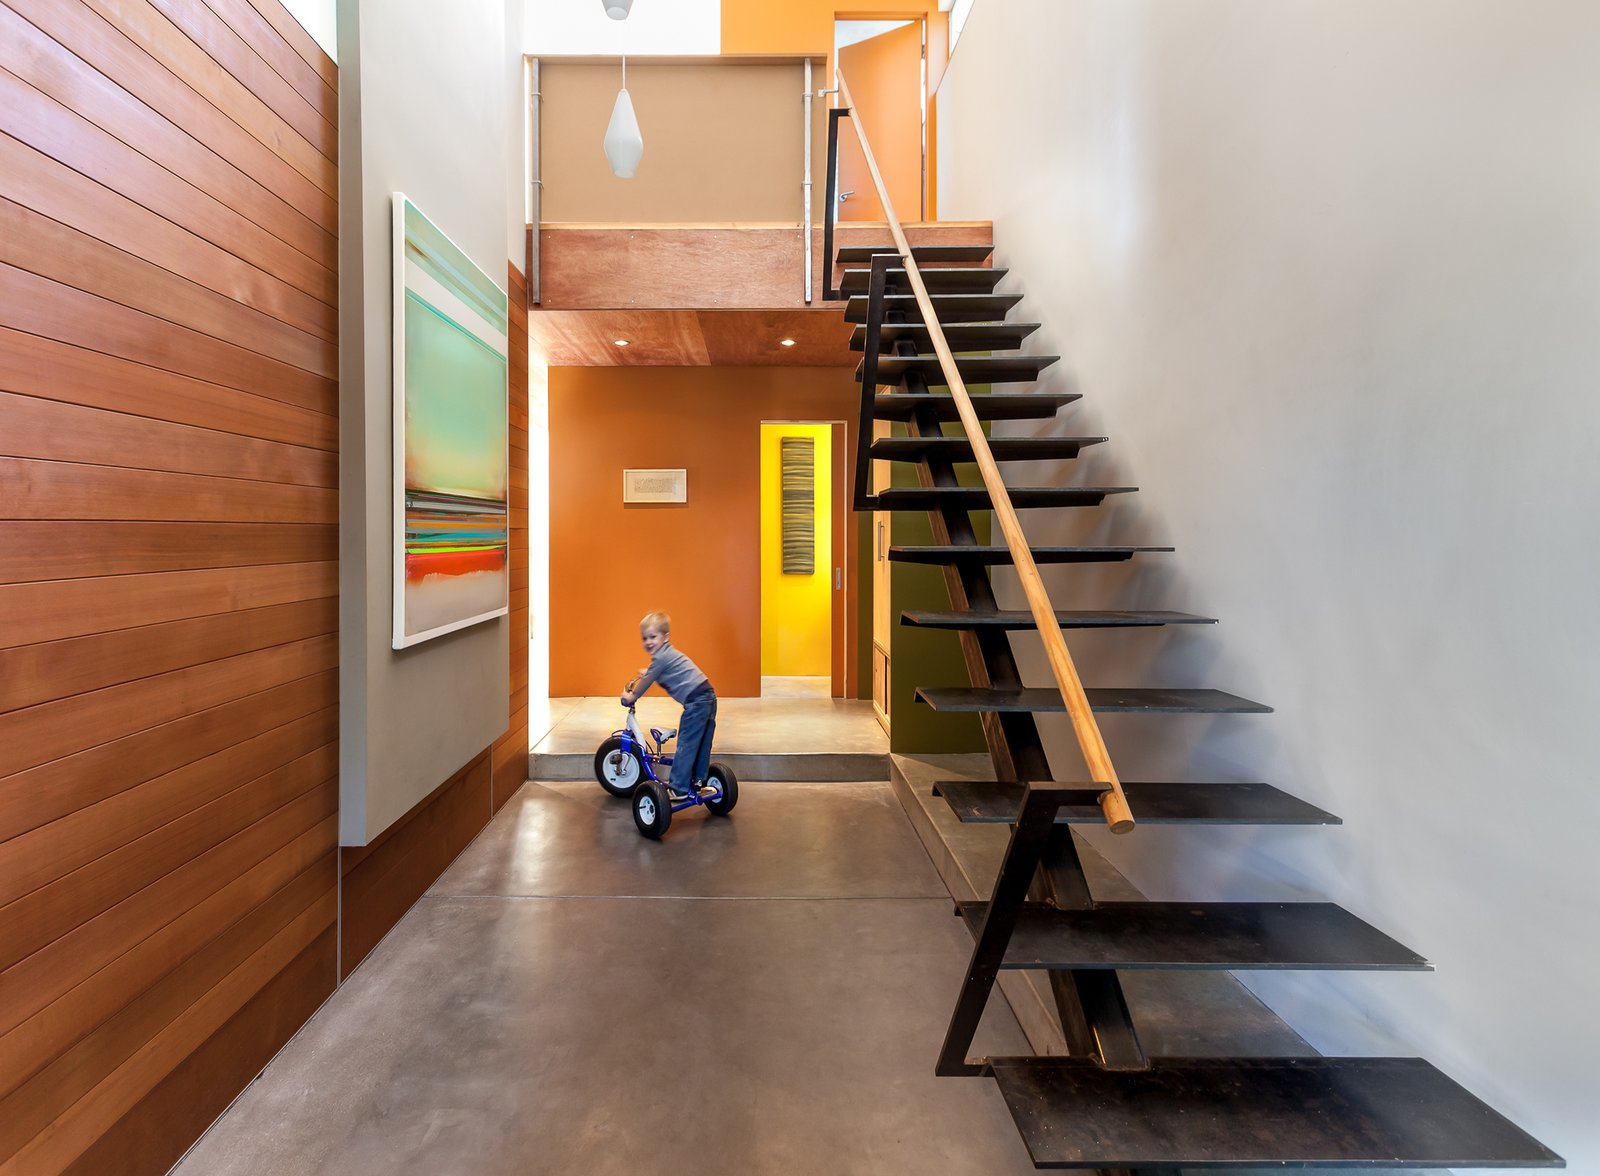 Entry and stairs Tagged: Concrete Counter, Wood Cabinet, Metal Cabinet, Concrete Backsplashe, Refrigerator, Wall Oven, Cooktops, Range Hood, Dishwasher, Undermount Sink, Bed, Chair, Track Lighting, Storage, Ceiling Lighting, Medium Hardwood Floor, Back Yard, Walkways, Trees, and Shrubs.  Land Park Residence by serrao design | Architecture